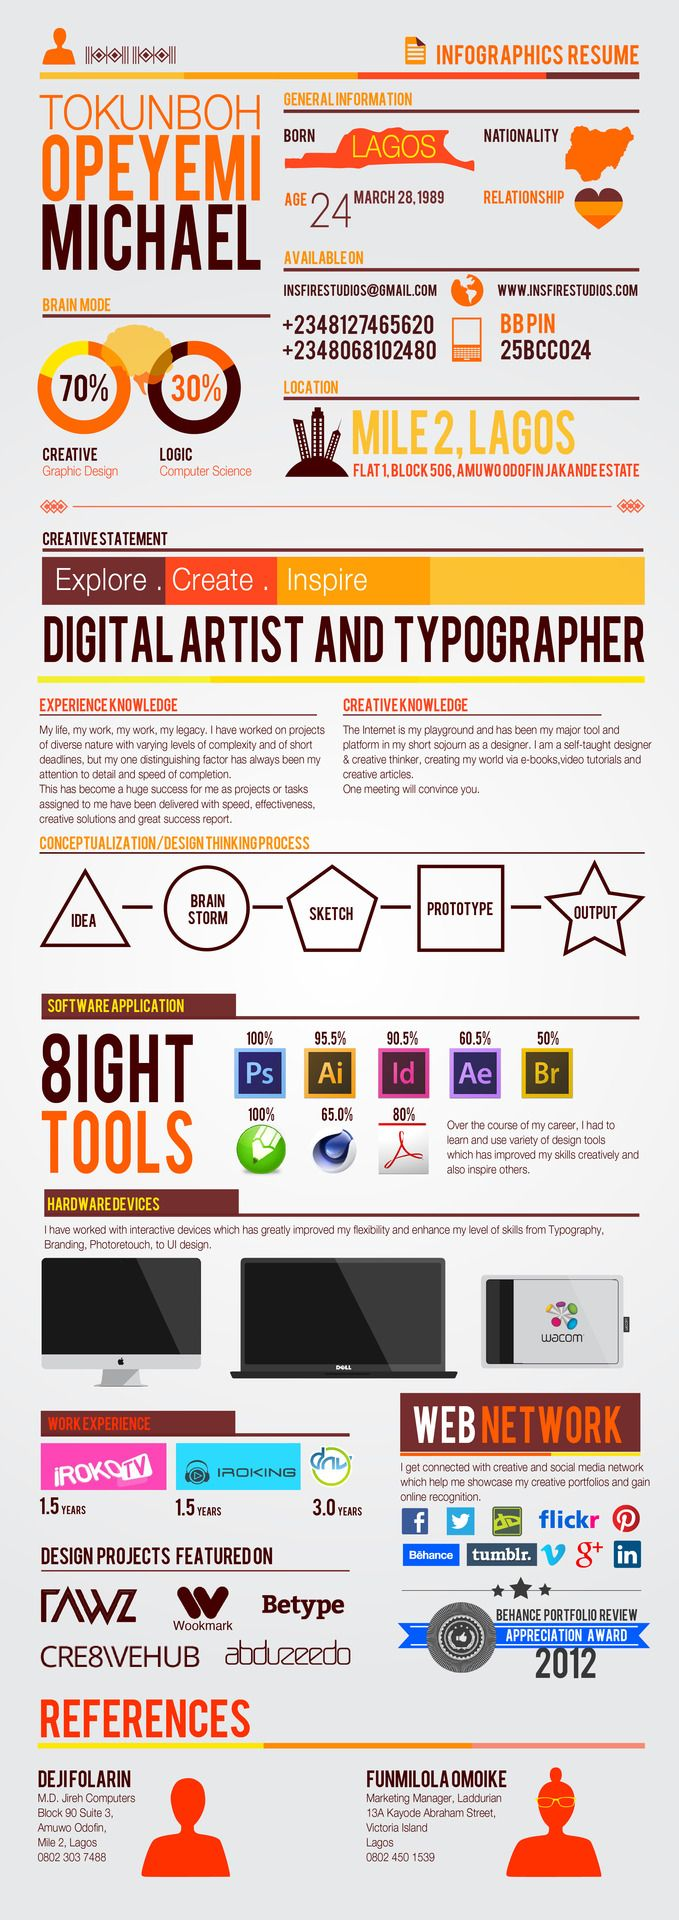 Opposenewapstandardsus  Remarkable  Ideas About Infographic Resume On Pinterest  My Portfolio  With Glamorous  Ideas About Infographic Resume On Pinterest  My Portfolio Resume And Resume Design With Divine Professional Association Of Resume Writers And Career Coaches Also Build Your Own Resume Free In Addition Graduate Teaching Assistant Resume And Construction Estimator Resume As Well As Research Coordinator Resume Additionally Stage Management Resume From Pinterestcom With Opposenewapstandardsus  Glamorous  Ideas About Infographic Resume On Pinterest  My Portfolio  With Divine  Ideas About Infographic Resume On Pinterest  My Portfolio Resume And Resume Design And Remarkable Professional Association Of Resume Writers And Career Coaches Also Build Your Own Resume Free In Addition Graduate Teaching Assistant Resume From Pinterestcom